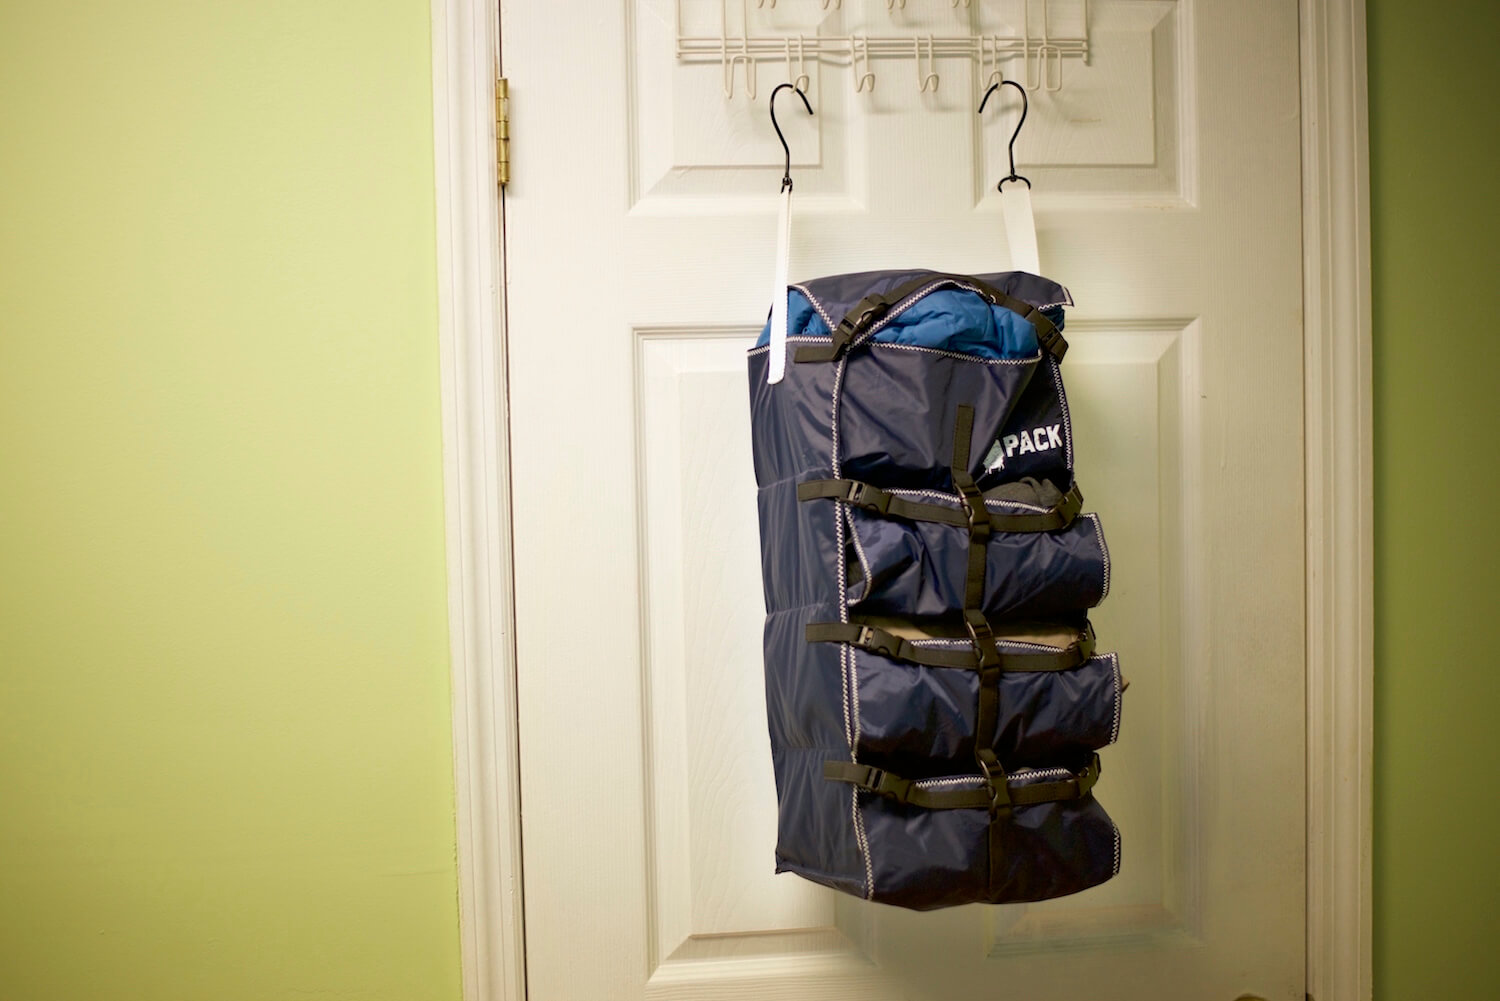 The Pack Gear Organizer Review